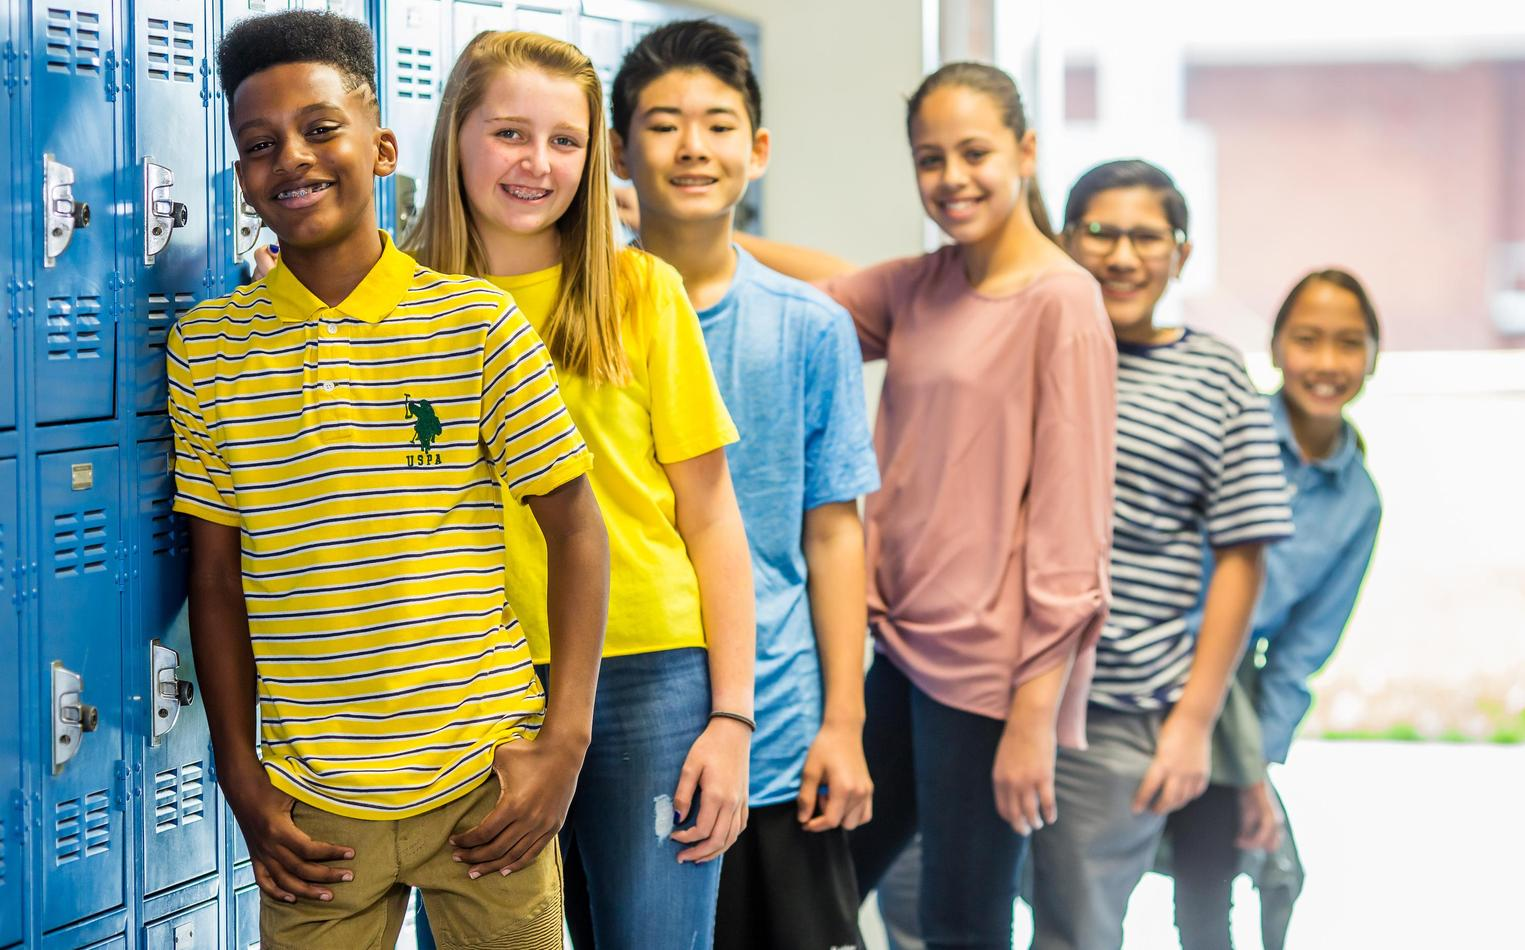 Middle school students posing in a group near their lockers.